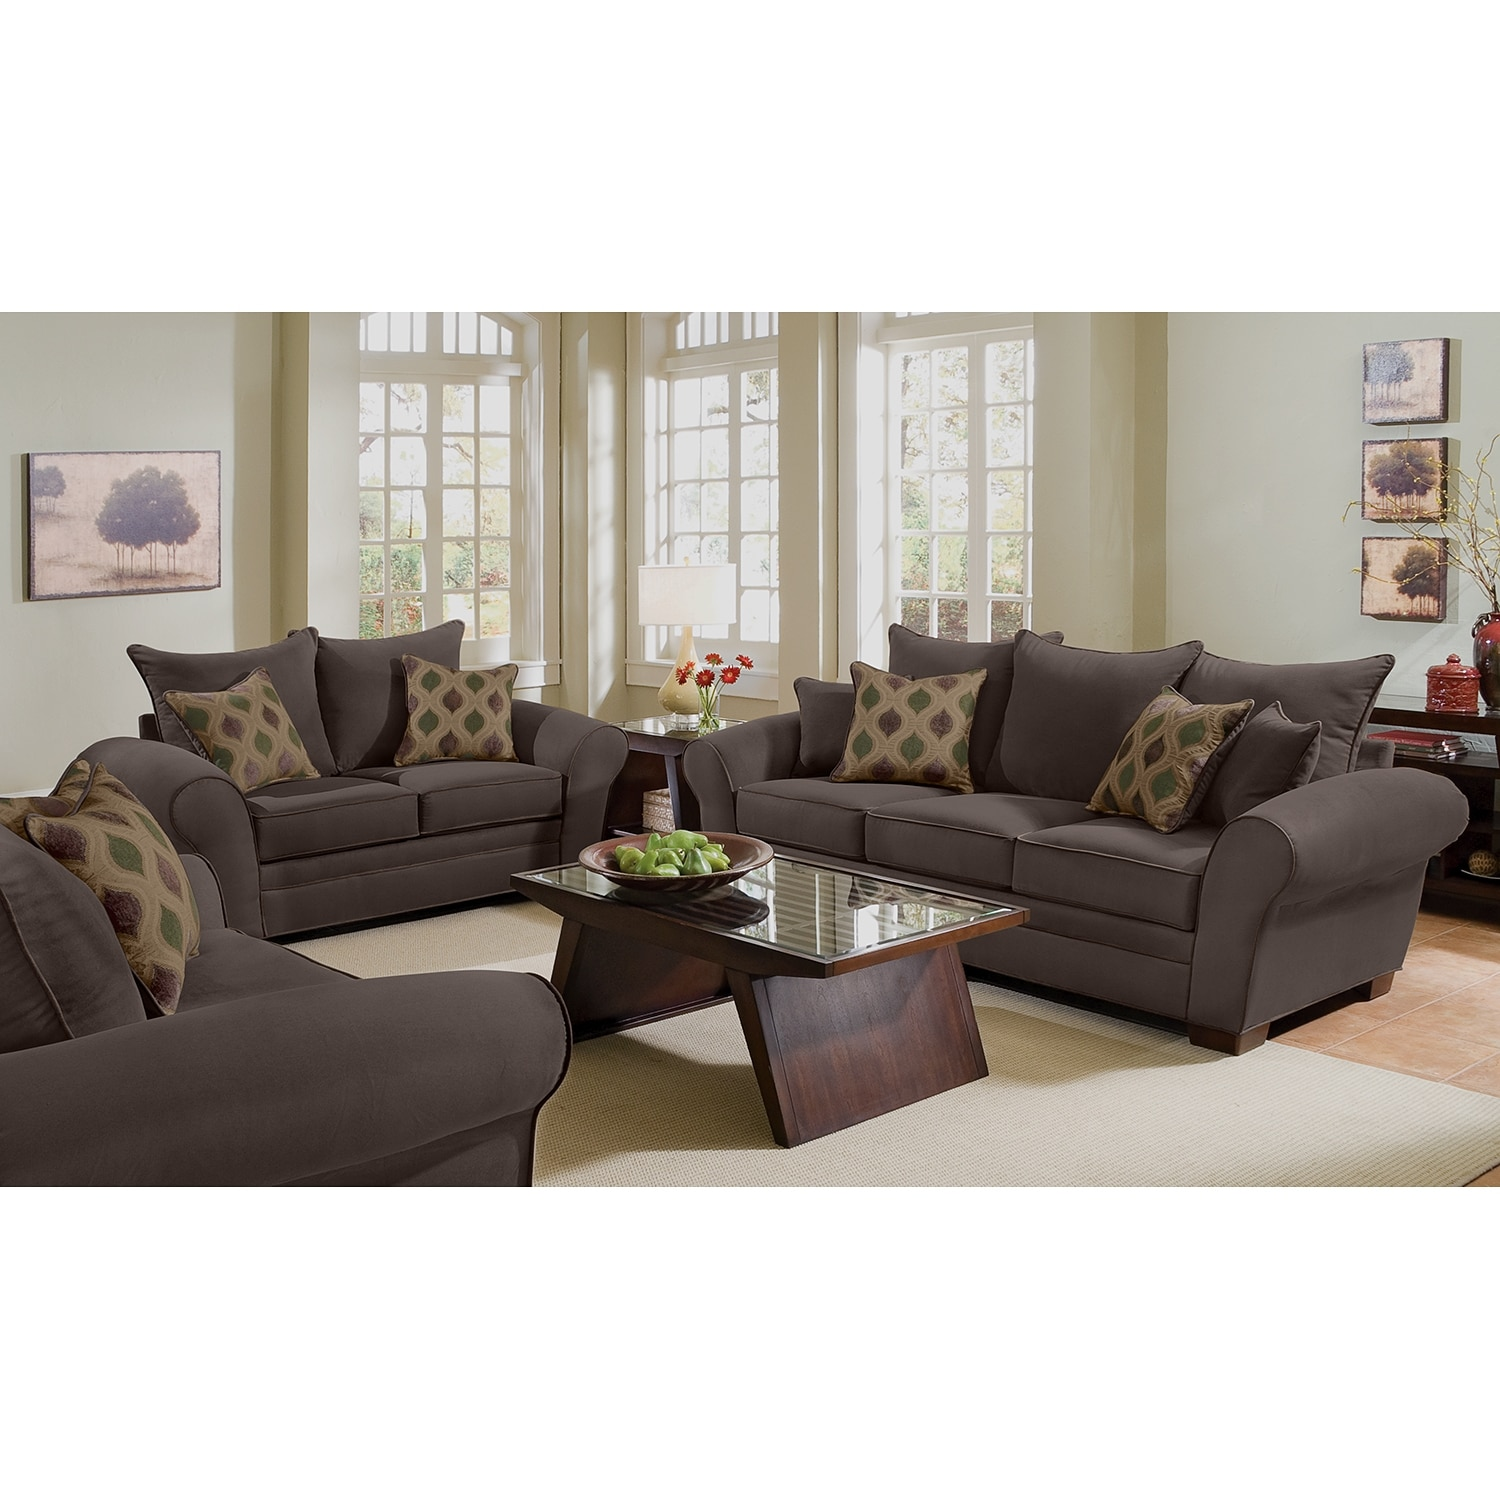 Rendezvous sofa and loveseat set chocolate american for Living room furniture packages